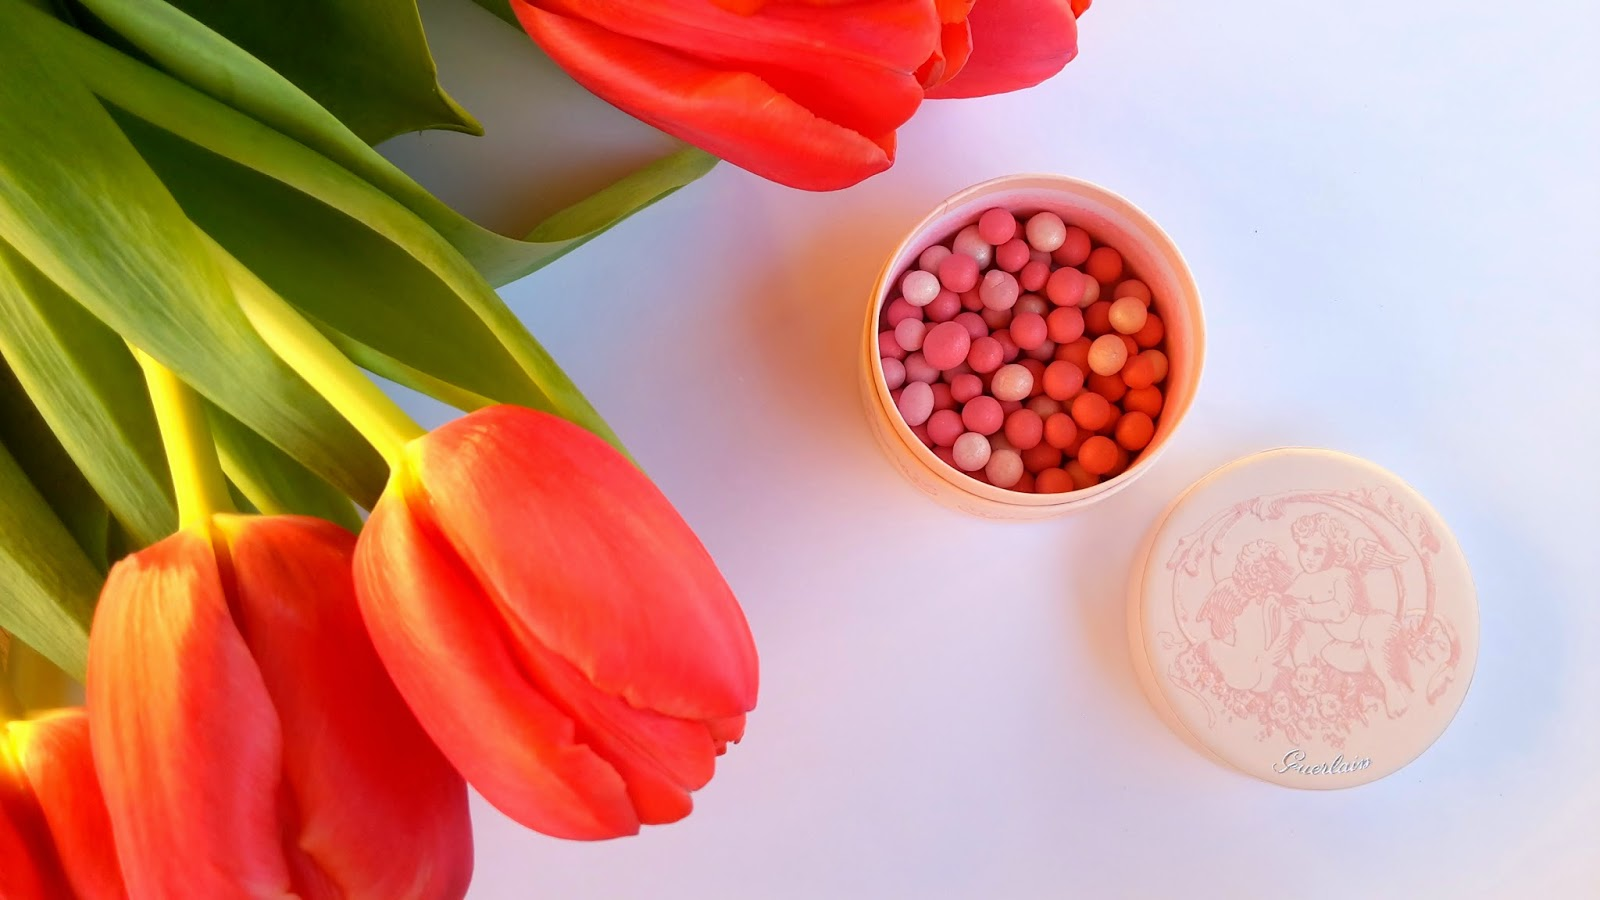 guerlain make up 2015, guerlain spring collection 2015, guerlain make up primavera 2015 collezione, guerlain spring 2015 collection les tendres, guerlain le meteorites perles de blush